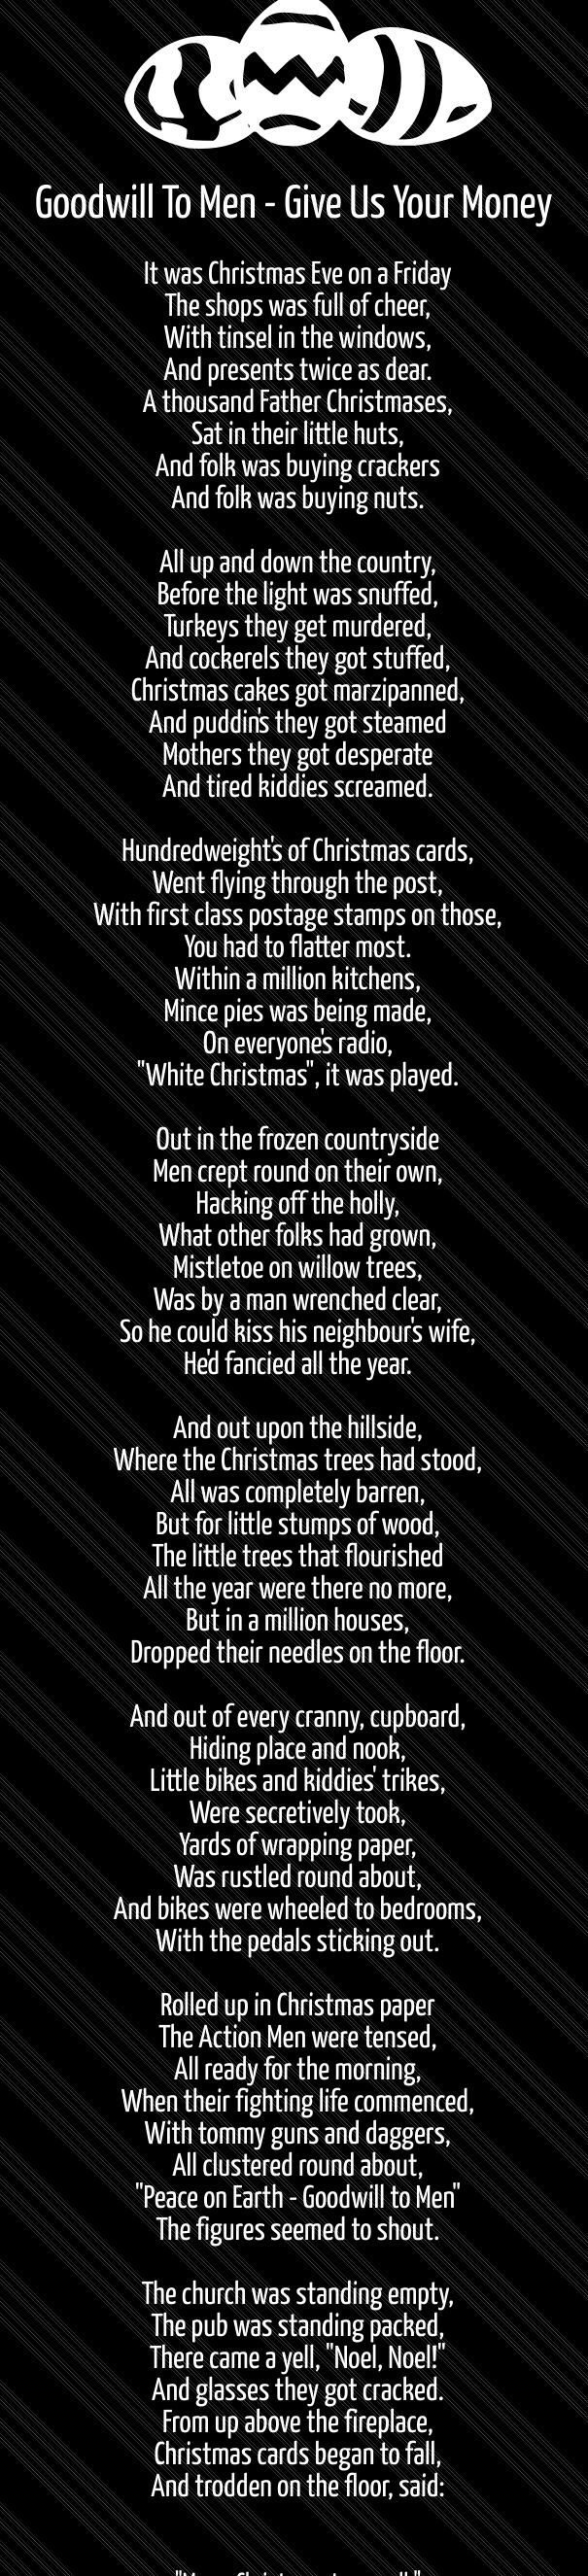 funny christmas poems for adults                                                                                                                                                                                 More